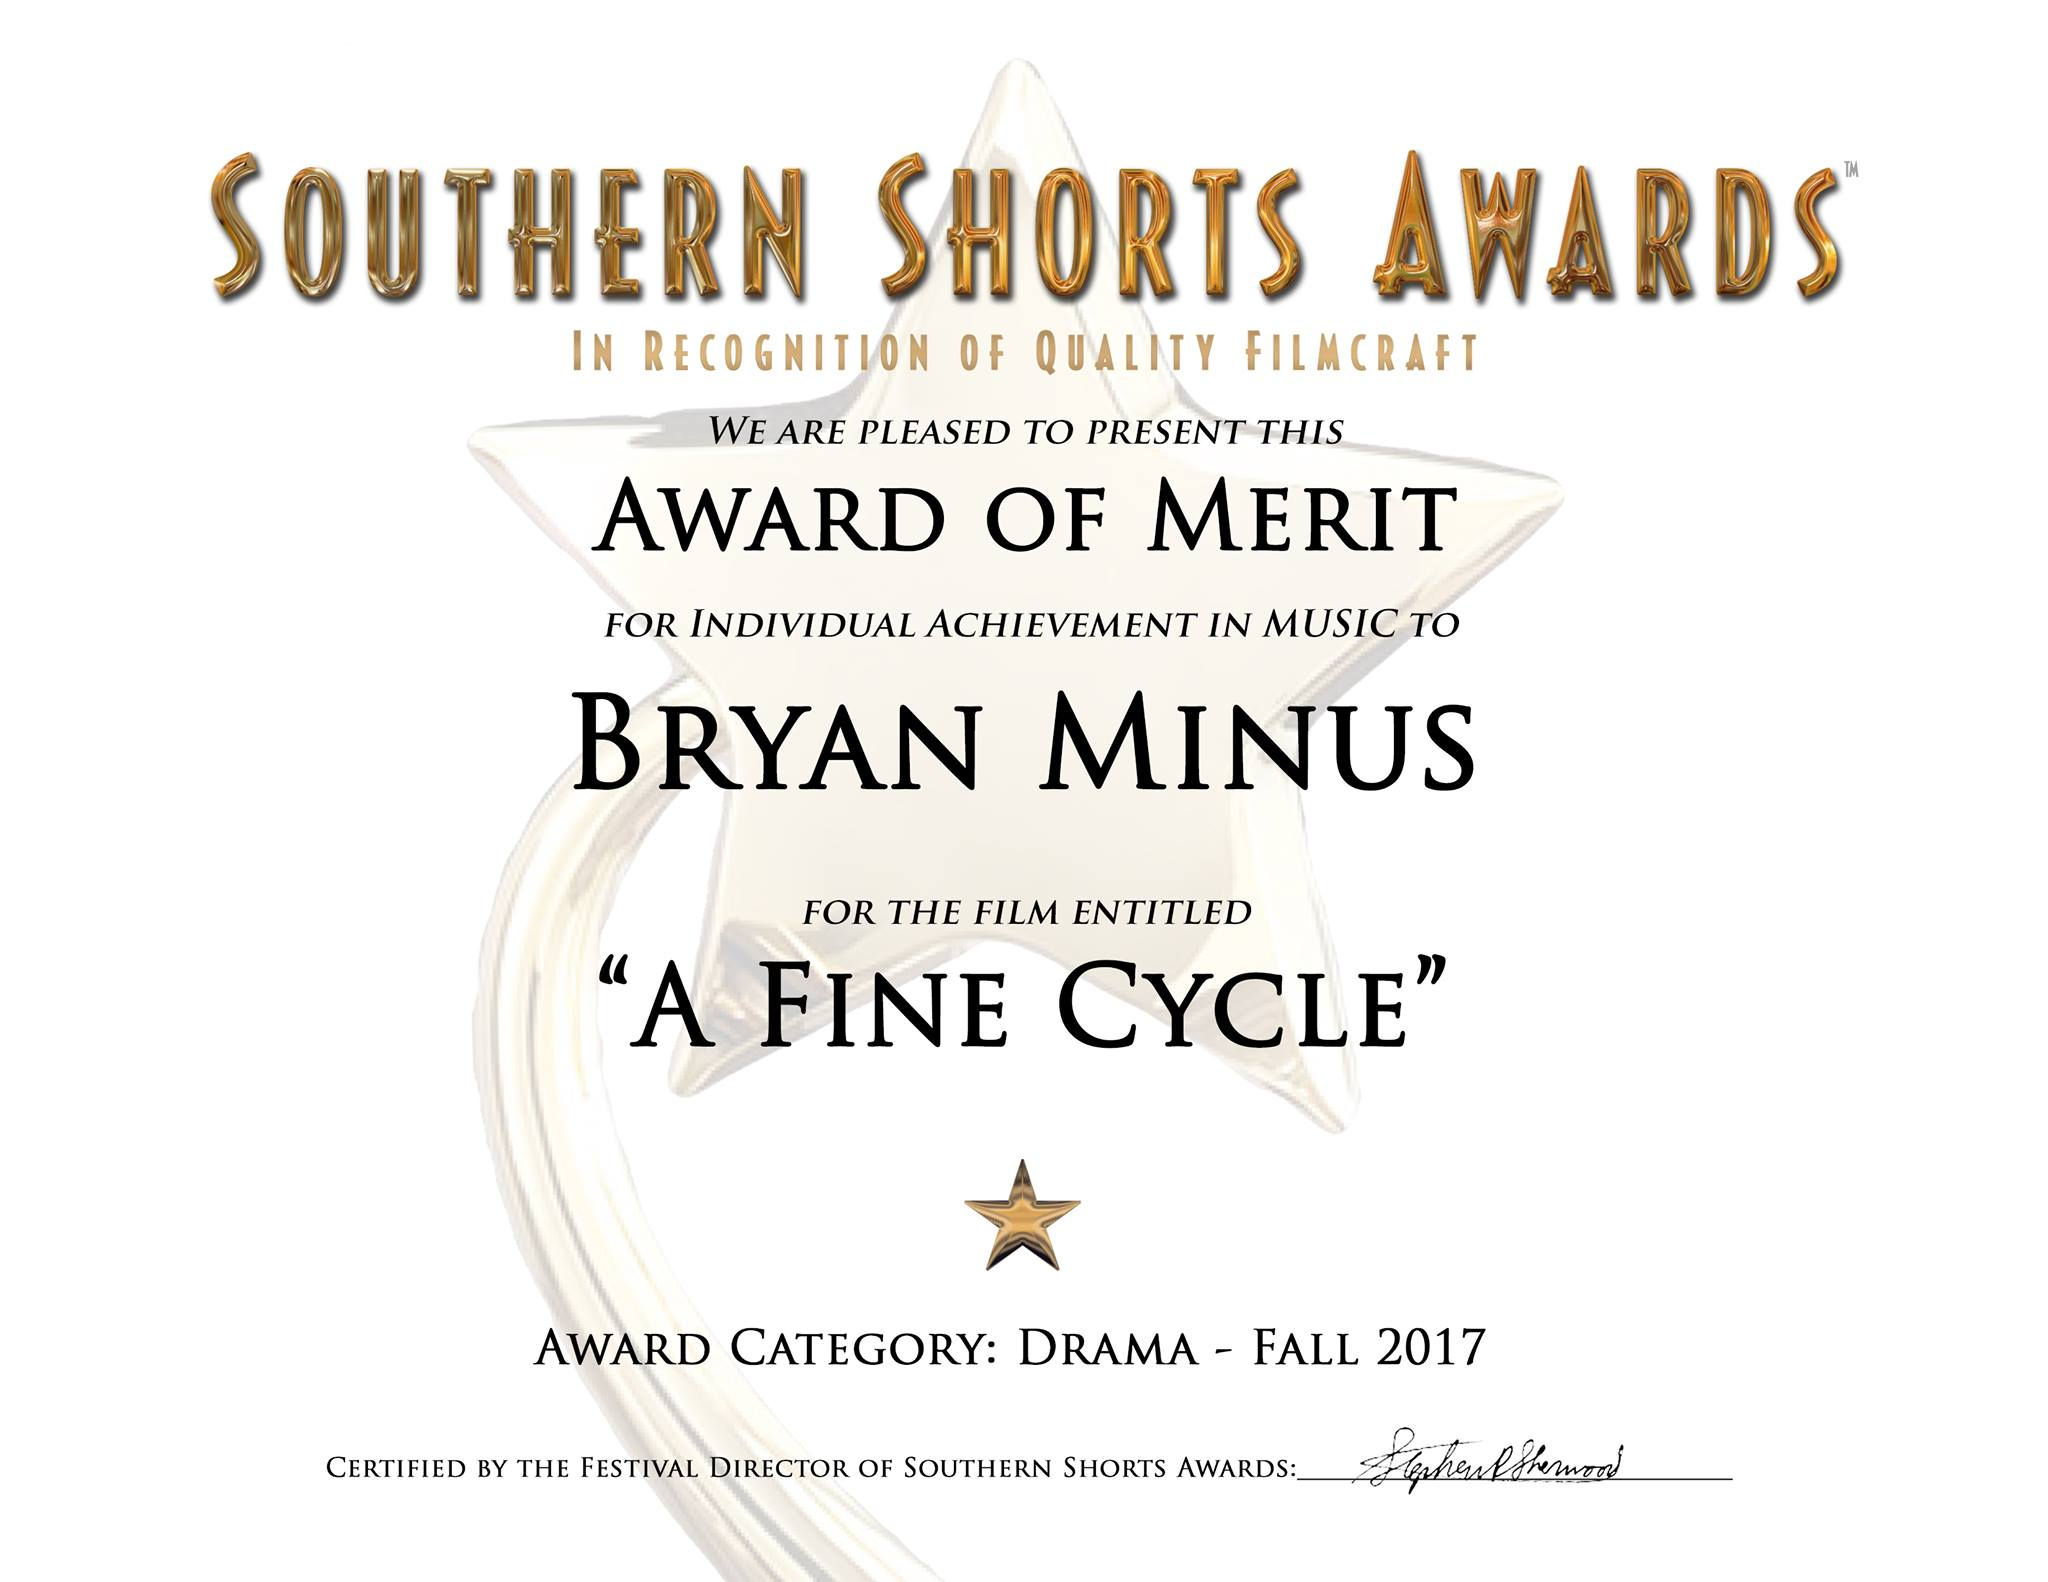 Award of Merit for Individual Acheivement in Music from the Southern Shorts Awards